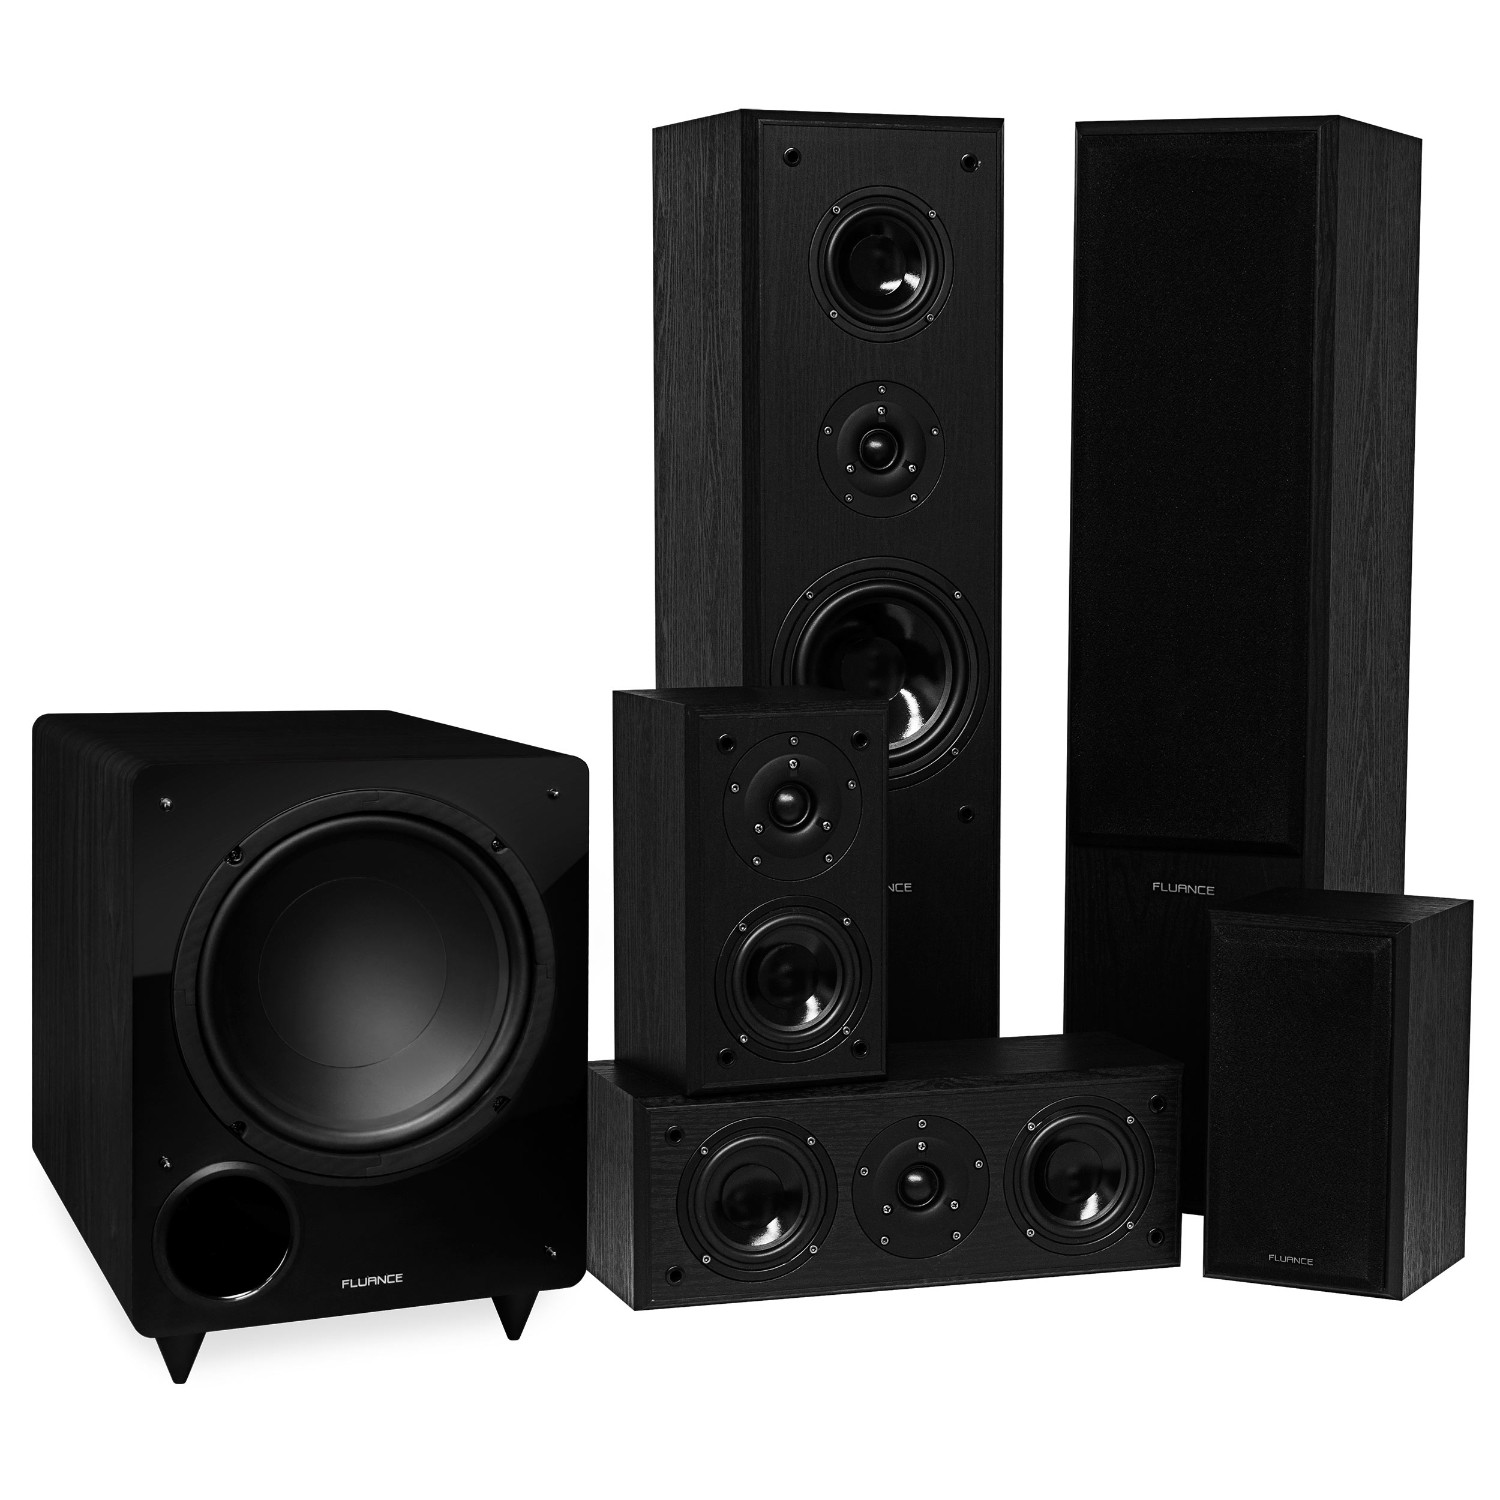 Fluance Classic Series Surround Sound Home Theater 51 Channel Hp In Ear H2310 Navy Blue Headset Speaker System Black Ash Av51br Packages Best Buy Canada